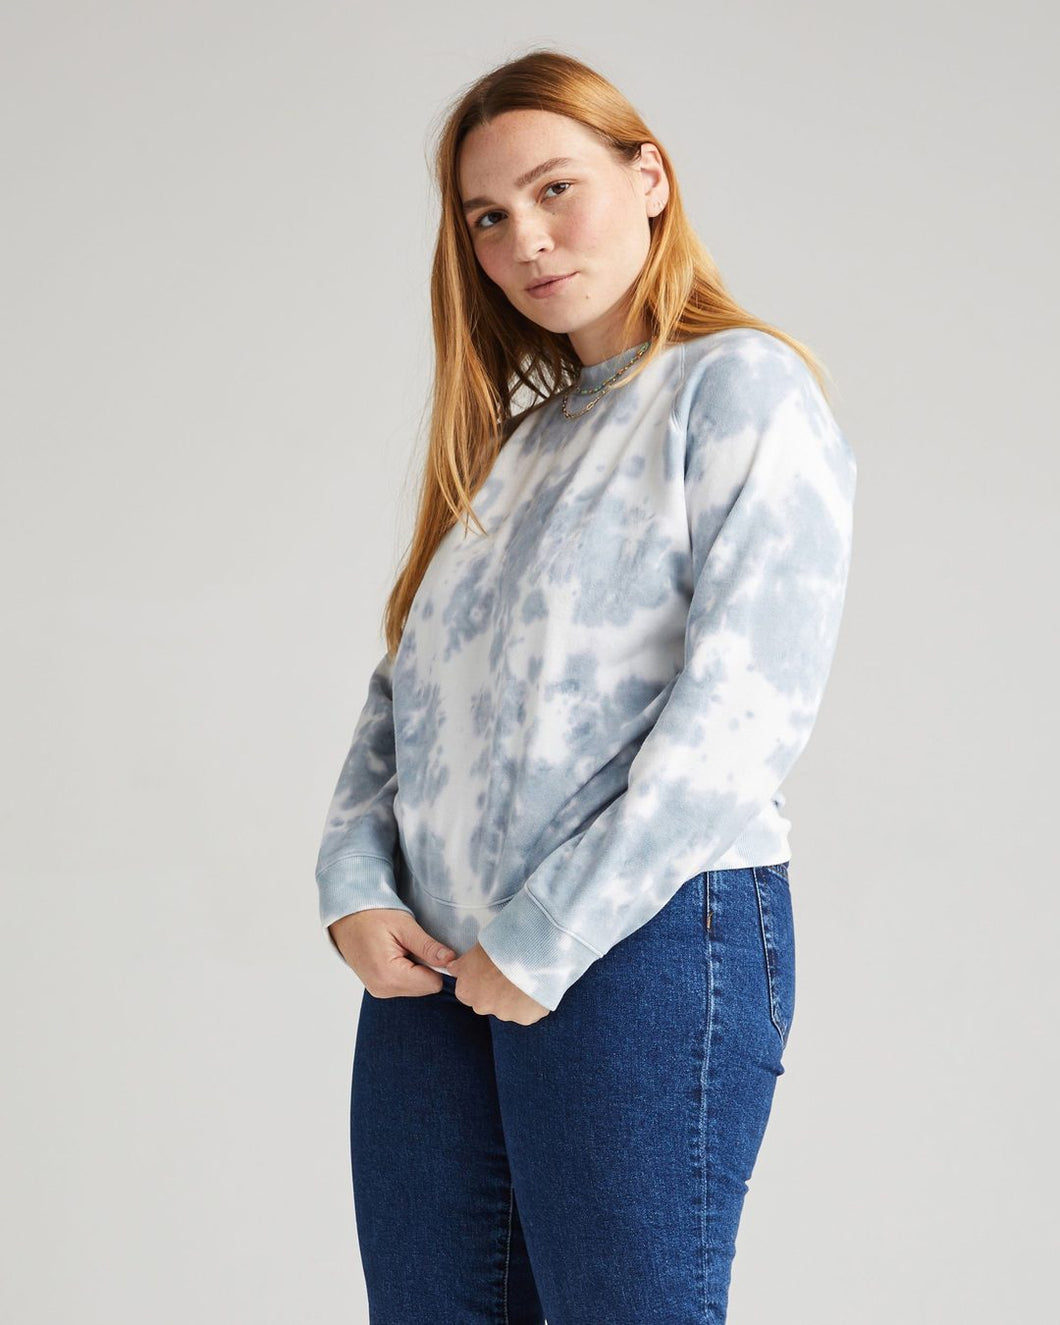 Women's Recycled Fleece Sweatshirt - Mirage Wash (Tie Dye)